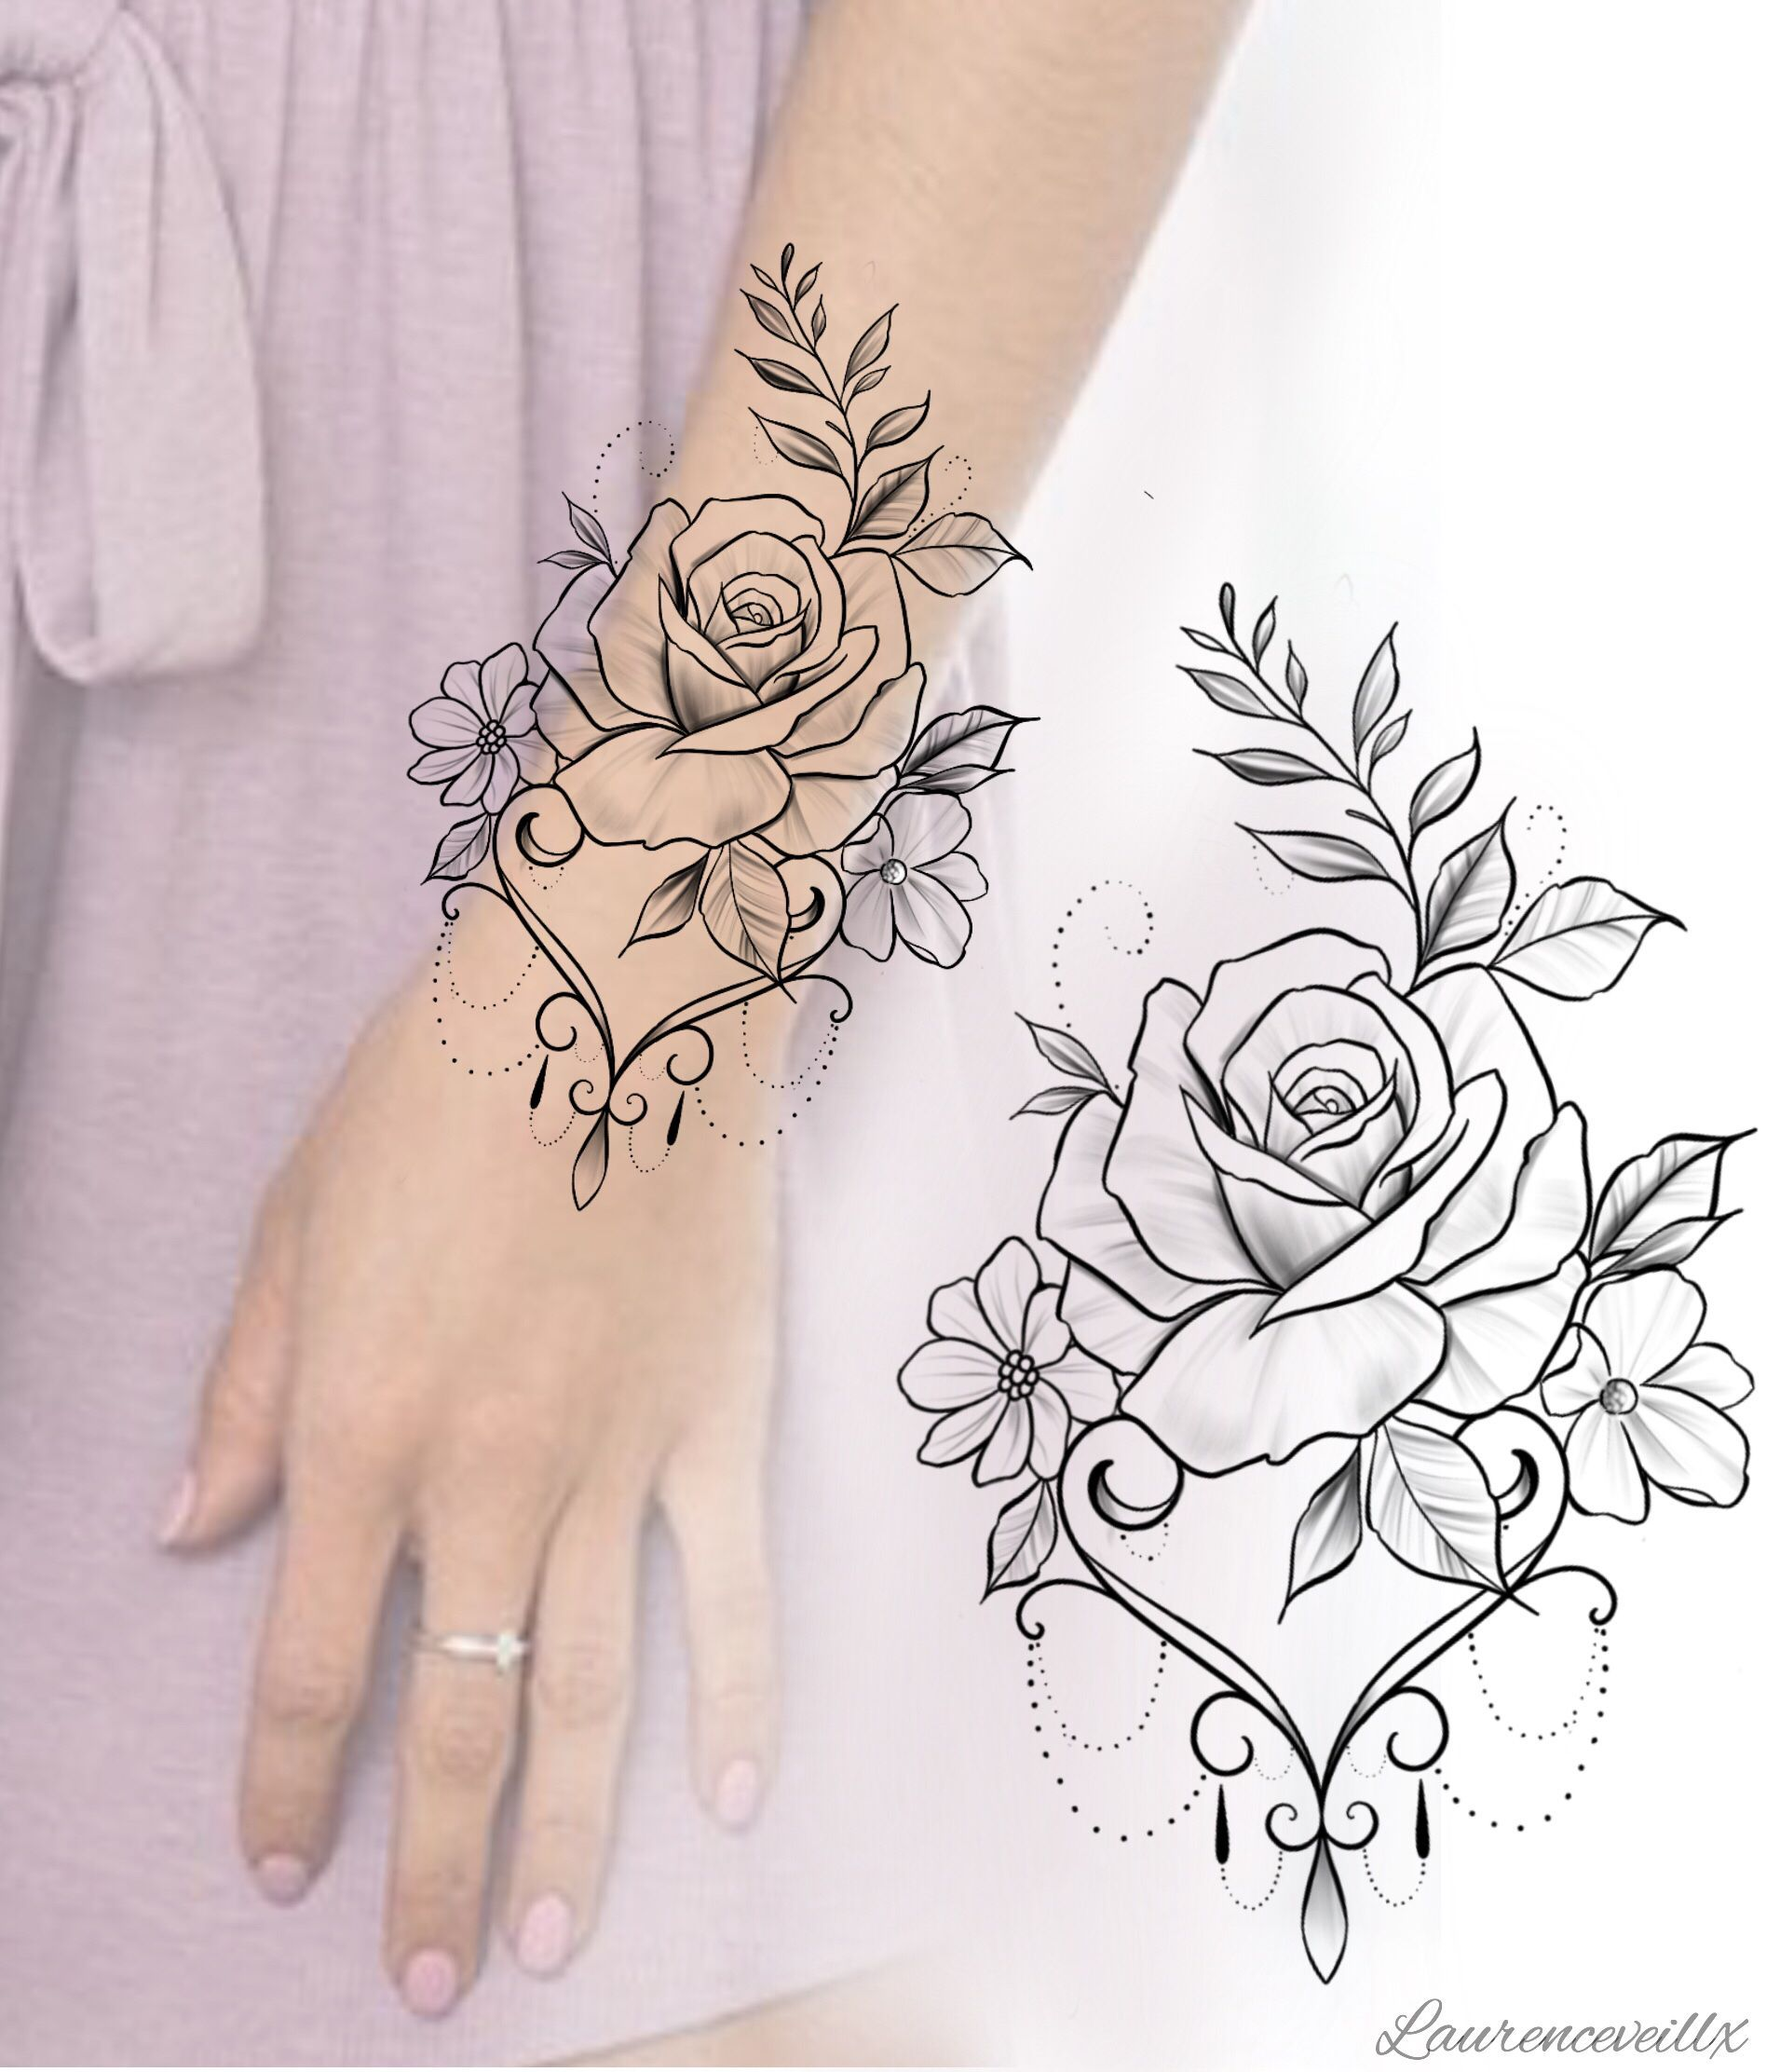 Flower Rose Tattoo Design Available For Instant Download Etsy Laurenceveillx Tattoodesigns Th In 2020 Rose Tattoo Design Hand Tattoos For Women Mandala Tattoo Sleeve